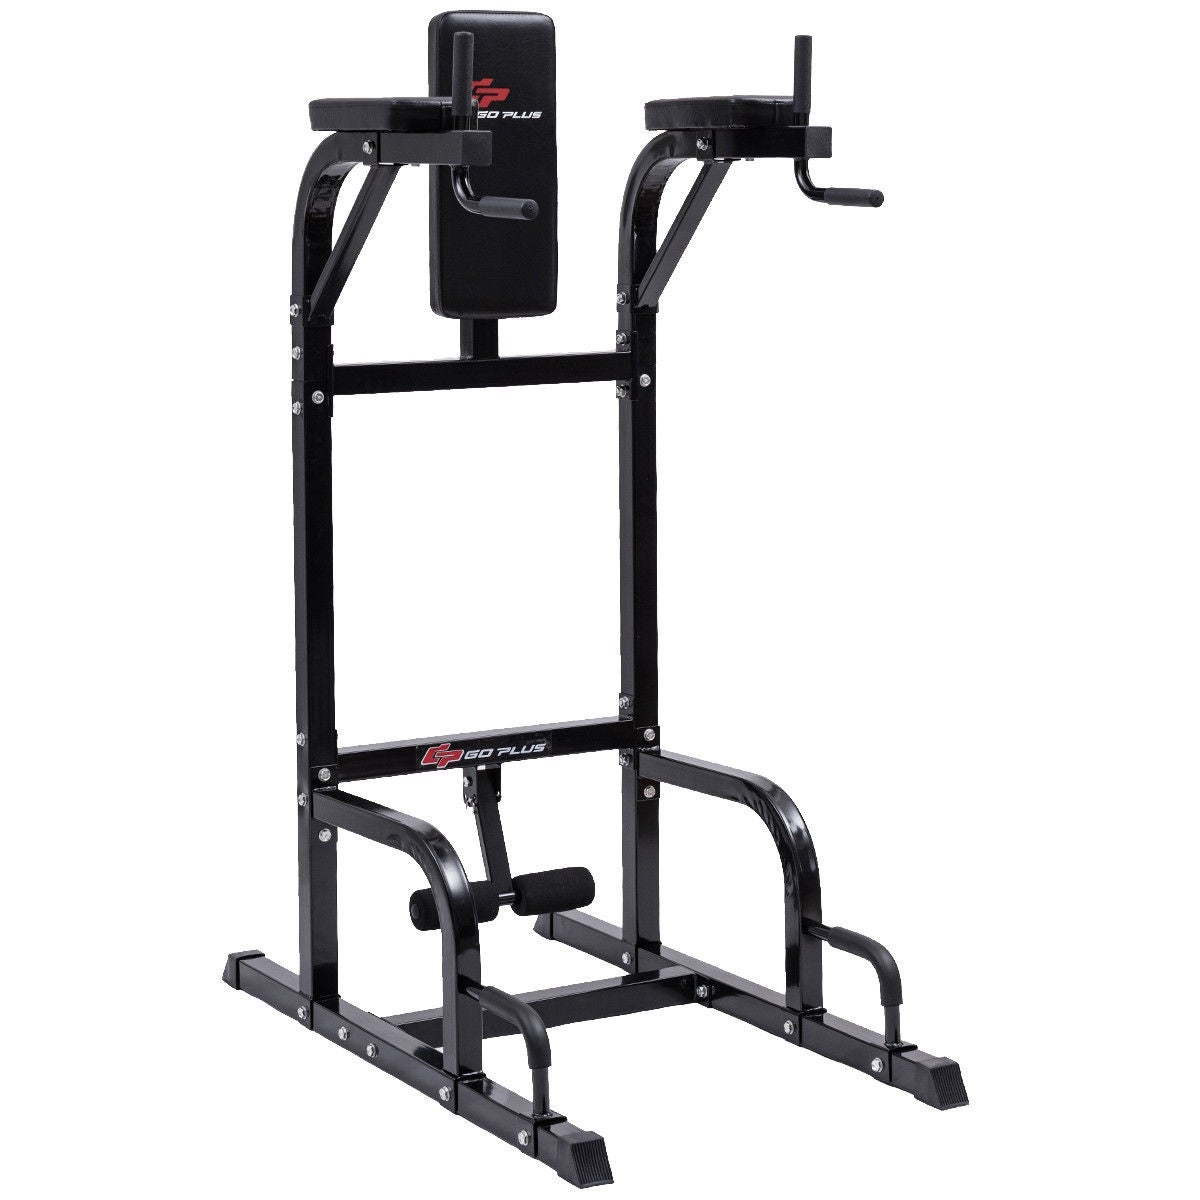 Goplus Vertical Knee Raise Dip Station Chin Up Push Up Stand Power Tower  Fitness - Black df25c9f5443a